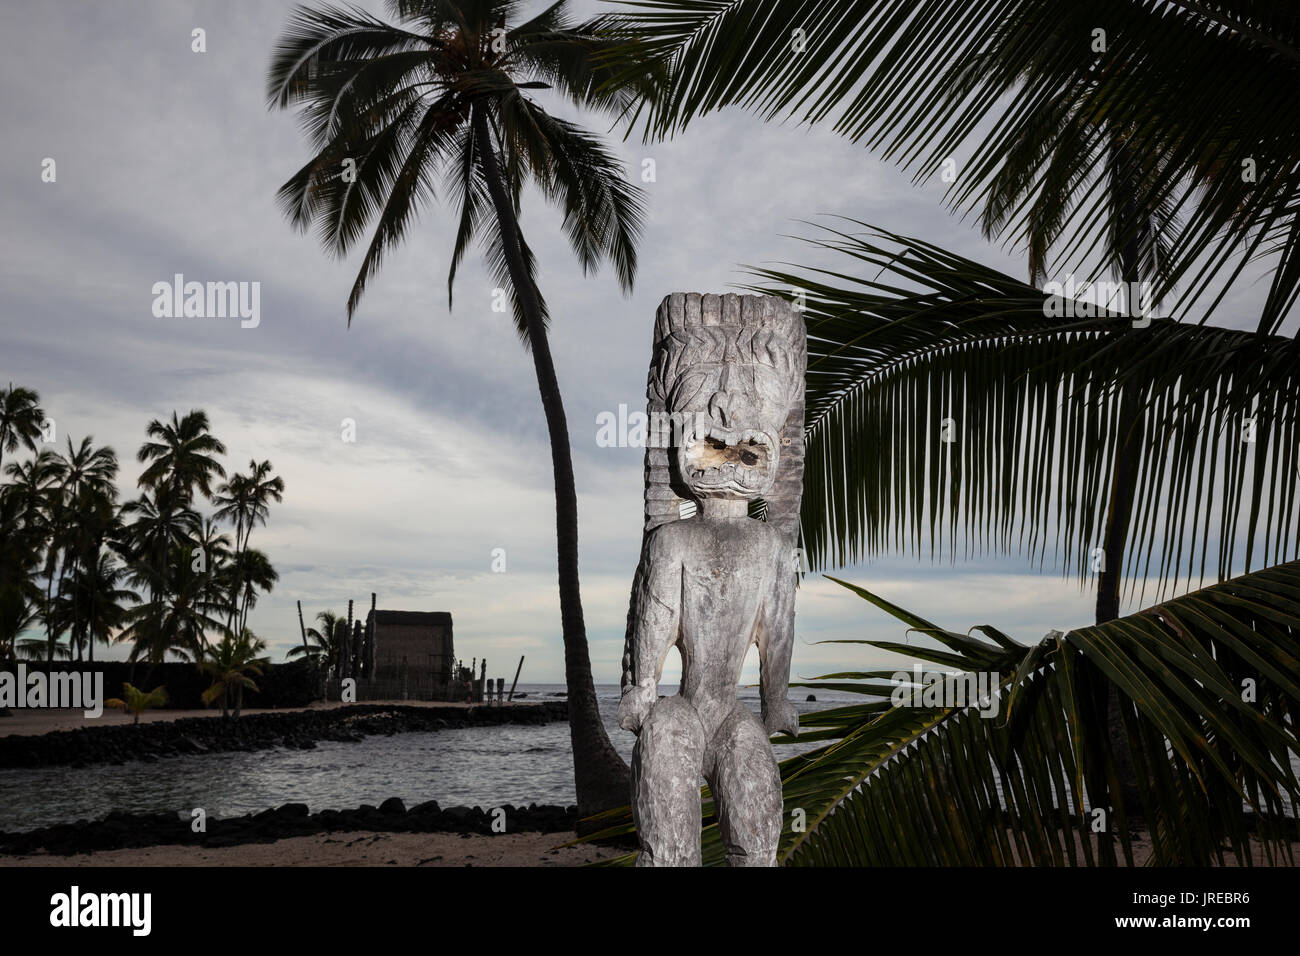 "HI00474-00...HAWAI""I - Carved wooden images at Pu'uhonua o Honaunau National Historic Park on the island of Hawai'i Stock Photo"